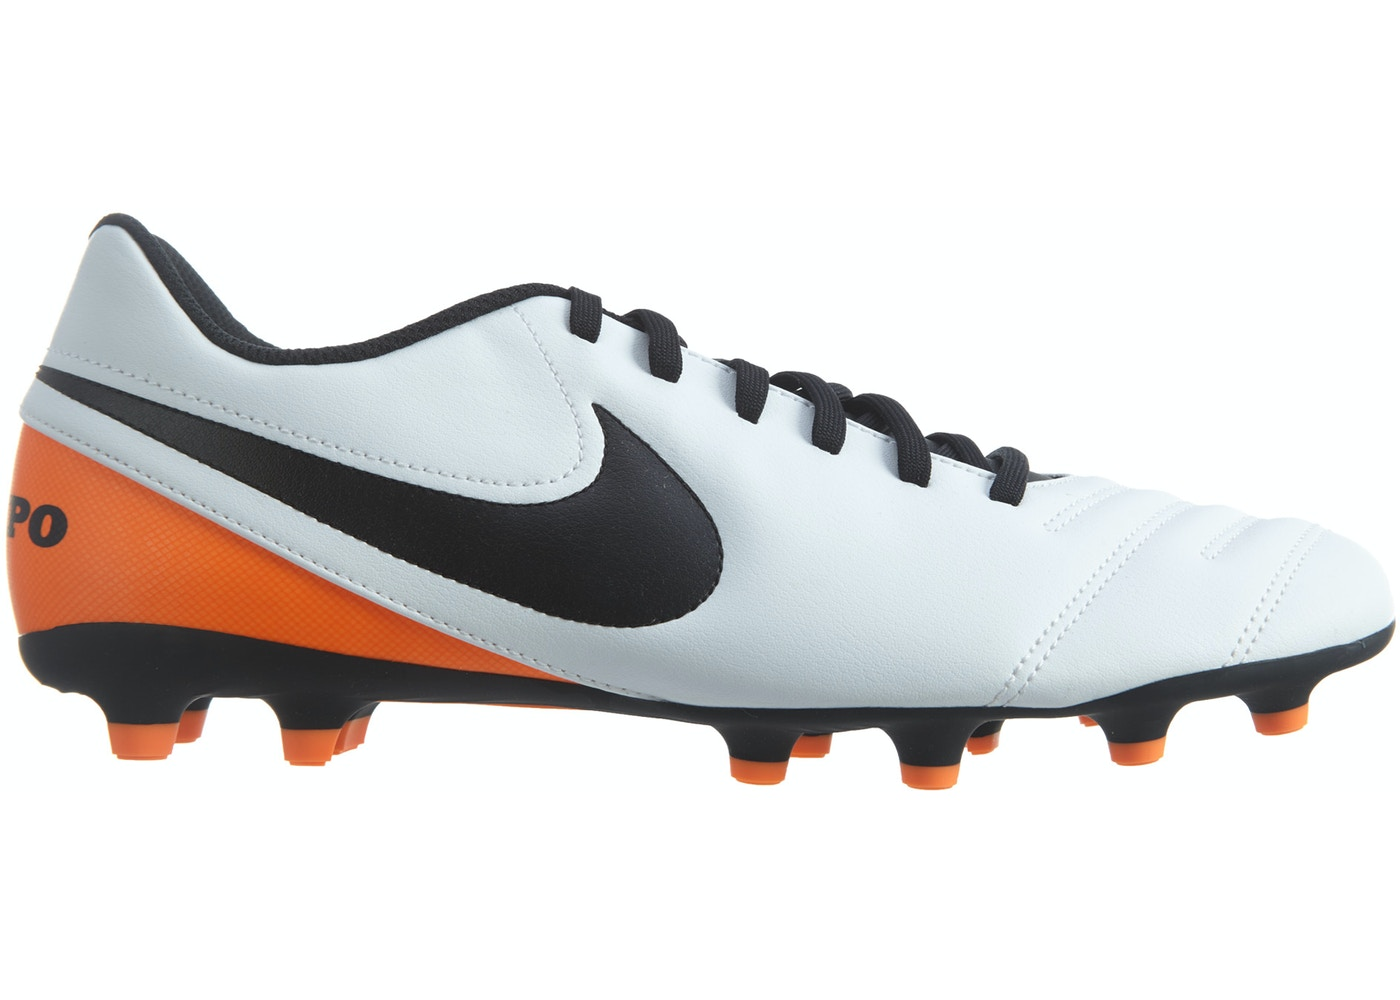 online store 64ad0 693e9 Nike Tiempo Rio III Fg White Black-Total Orange - 819233-108